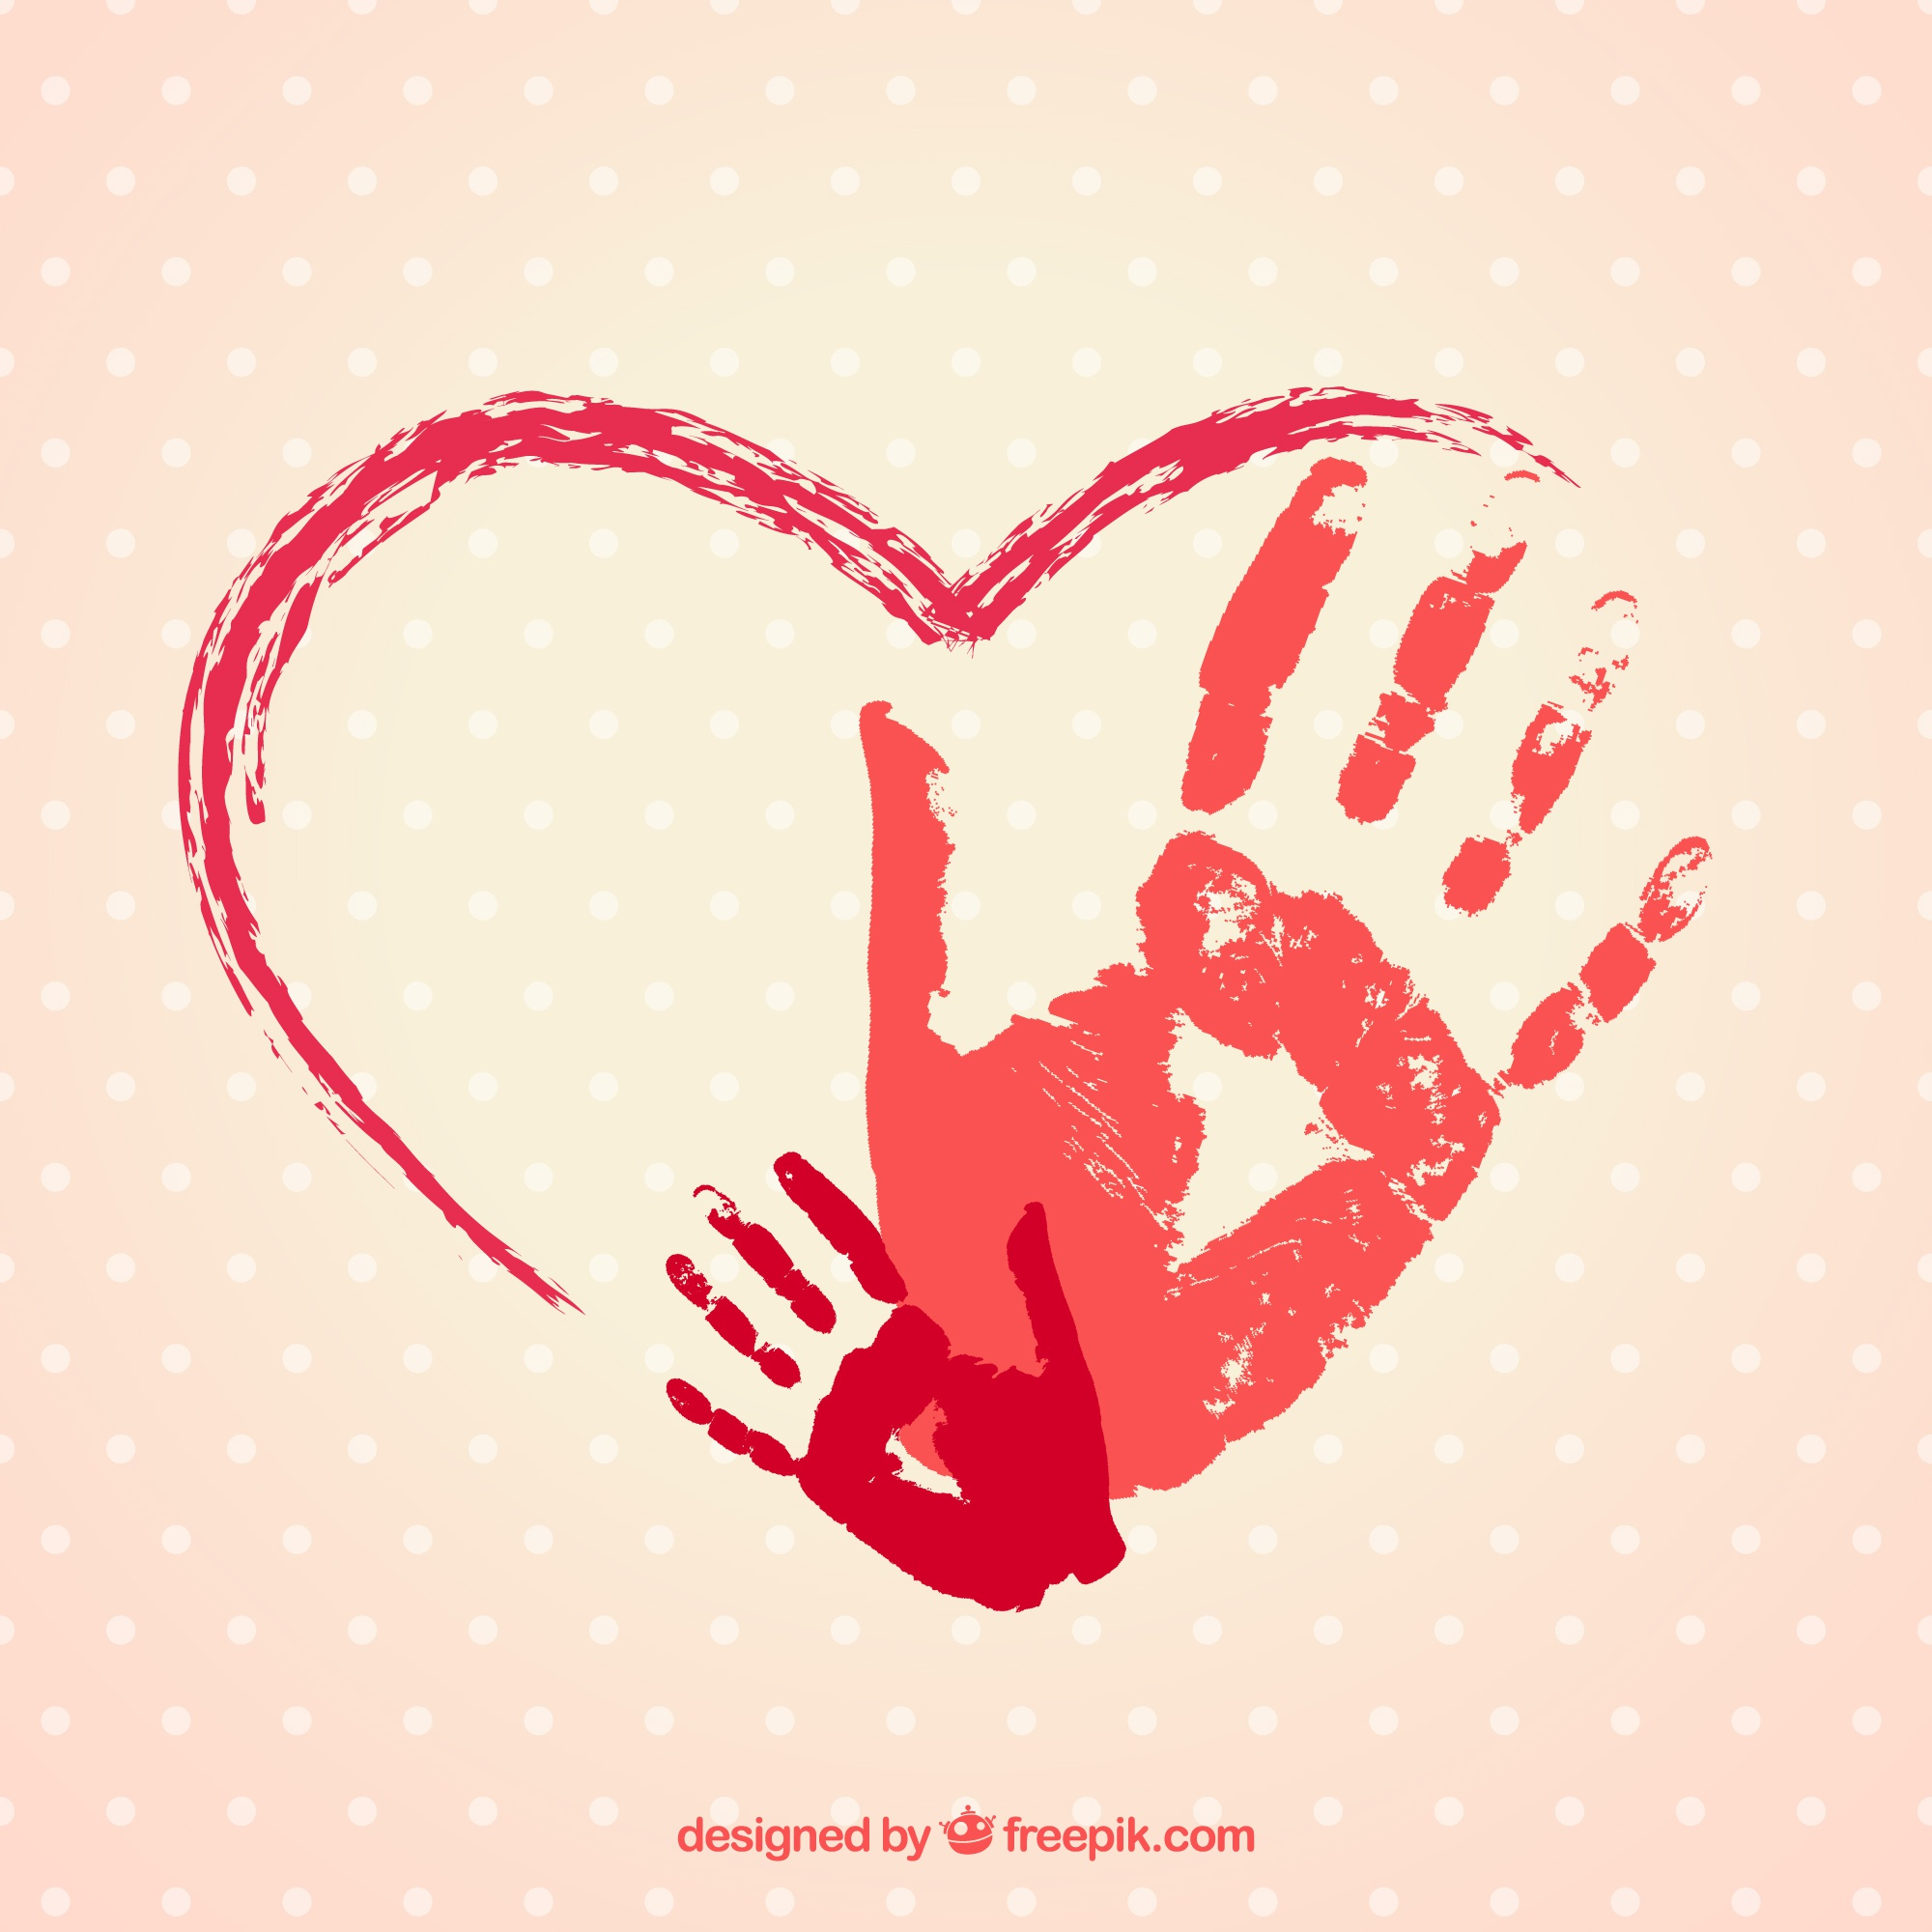 Hand painted heart with handprints